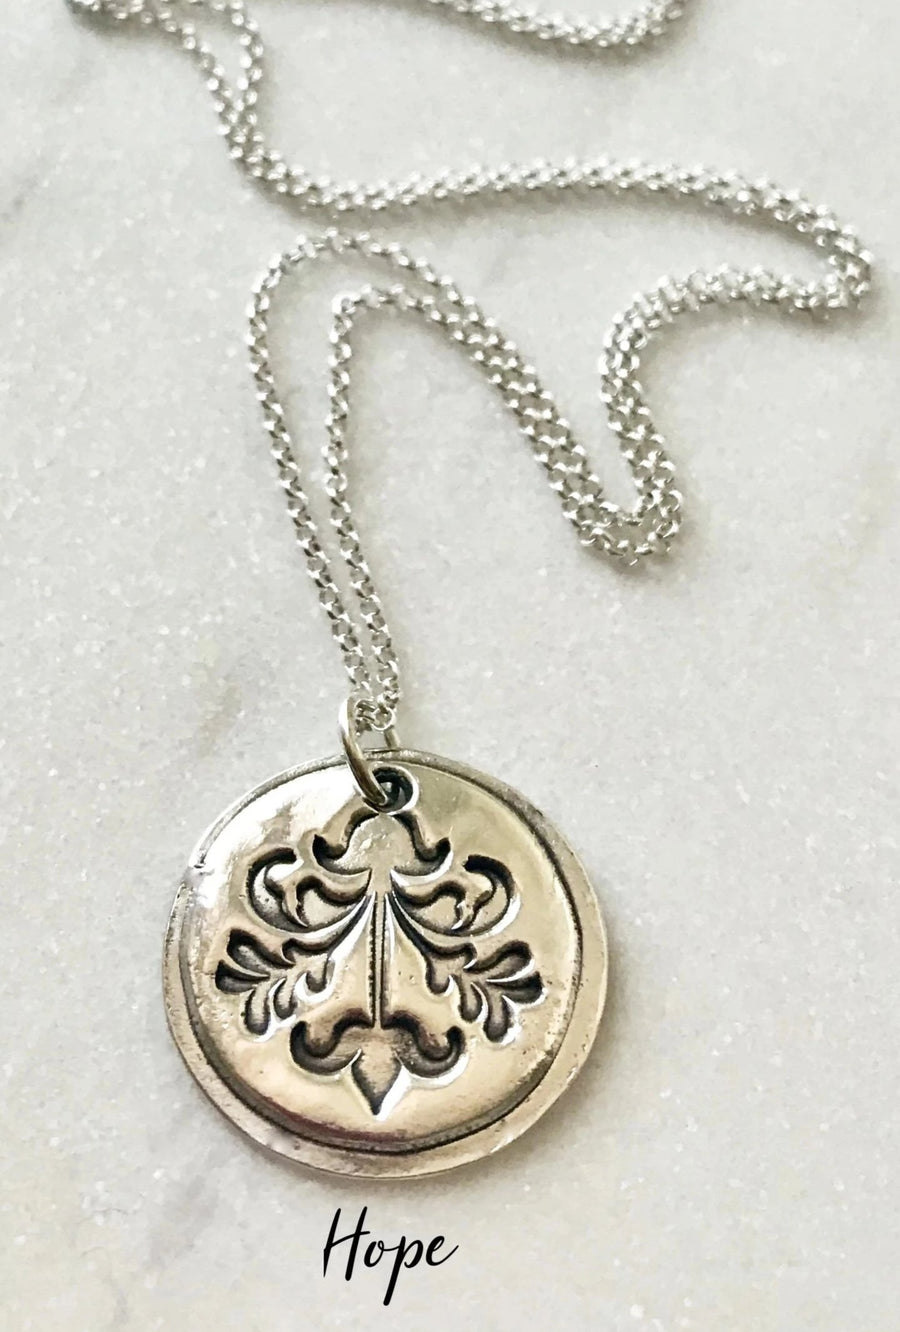 circular silver pendant necklaces with symbols hope friendship strength